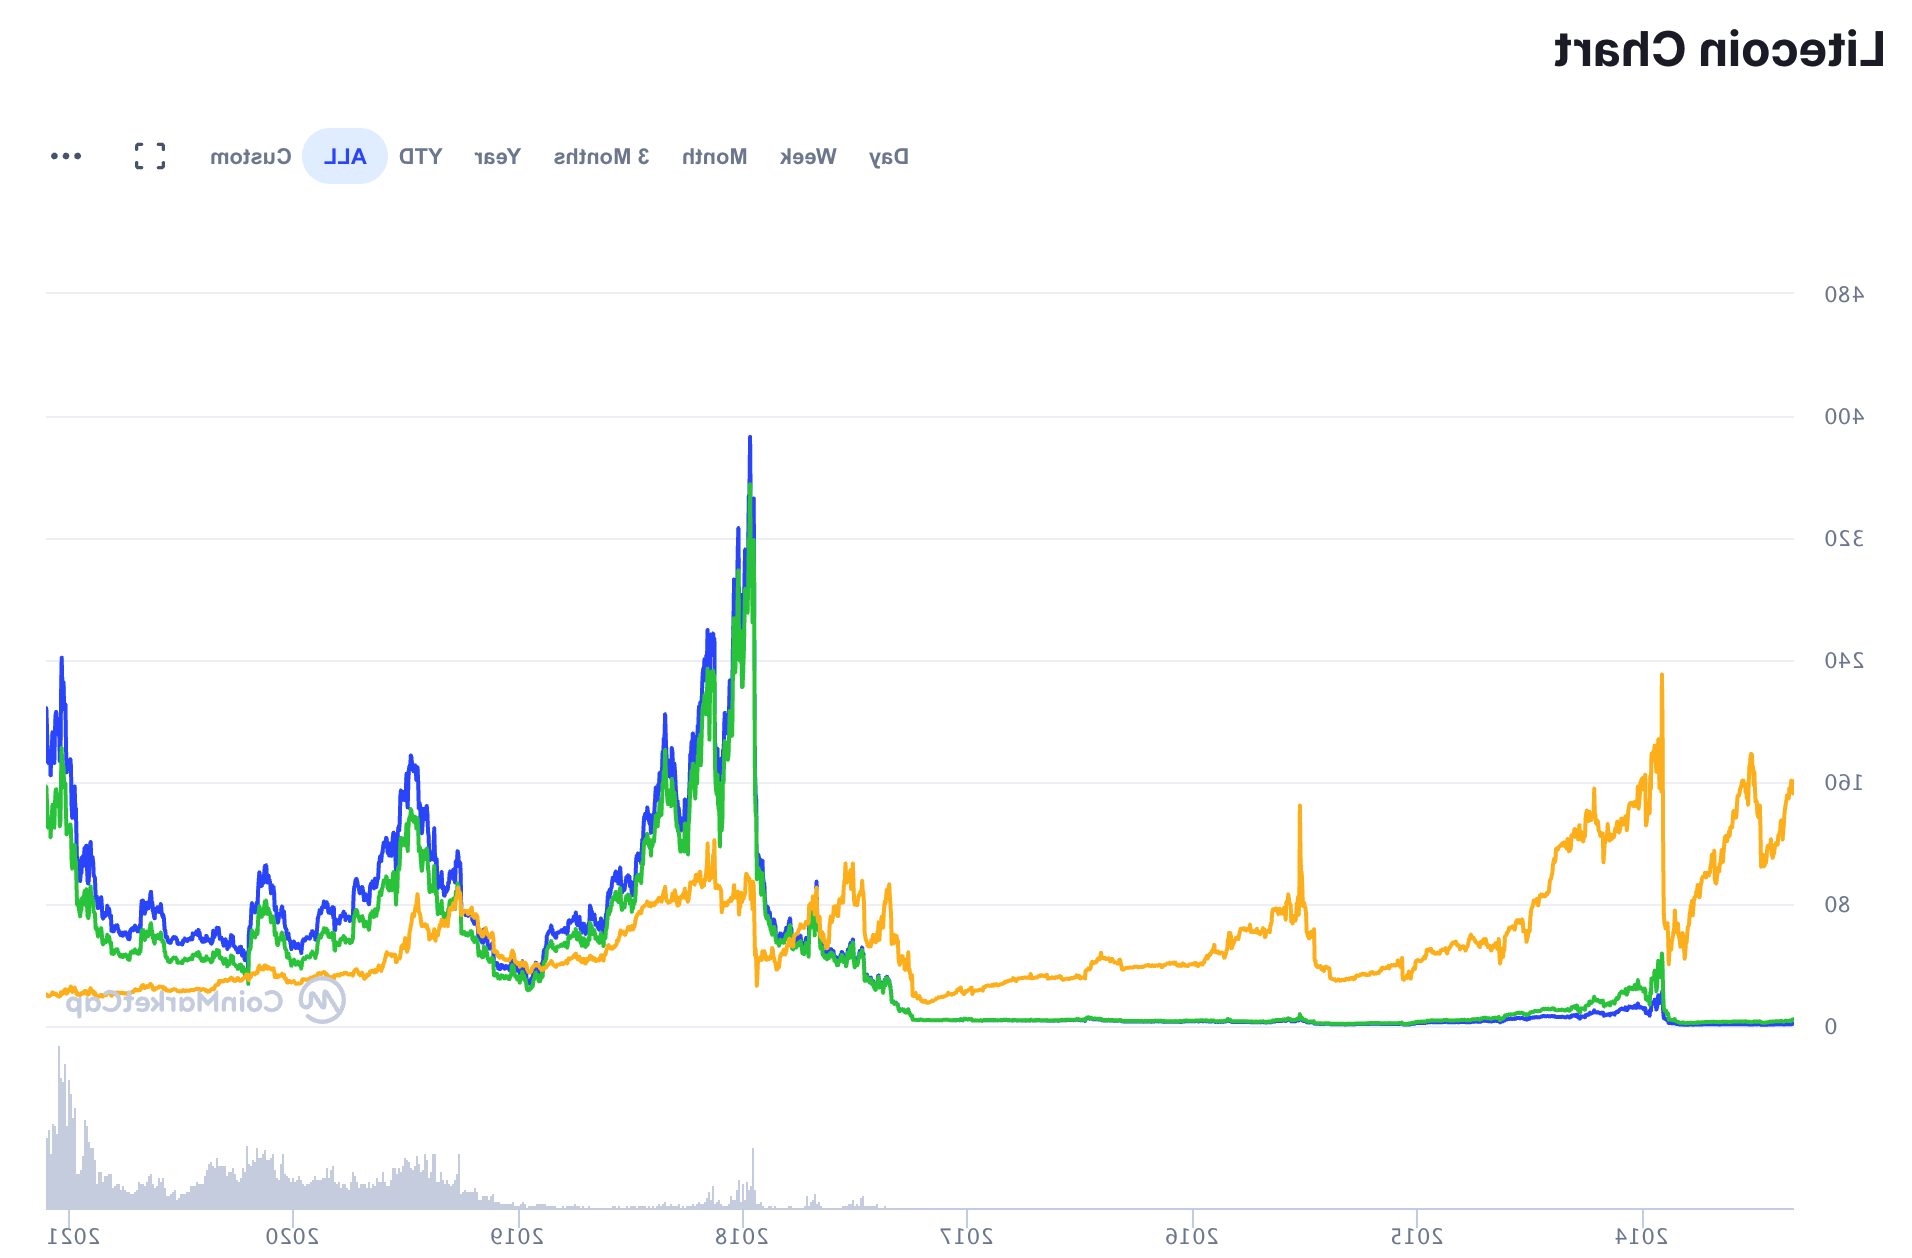 BNB of Binance on the podium: 3rd place deserved